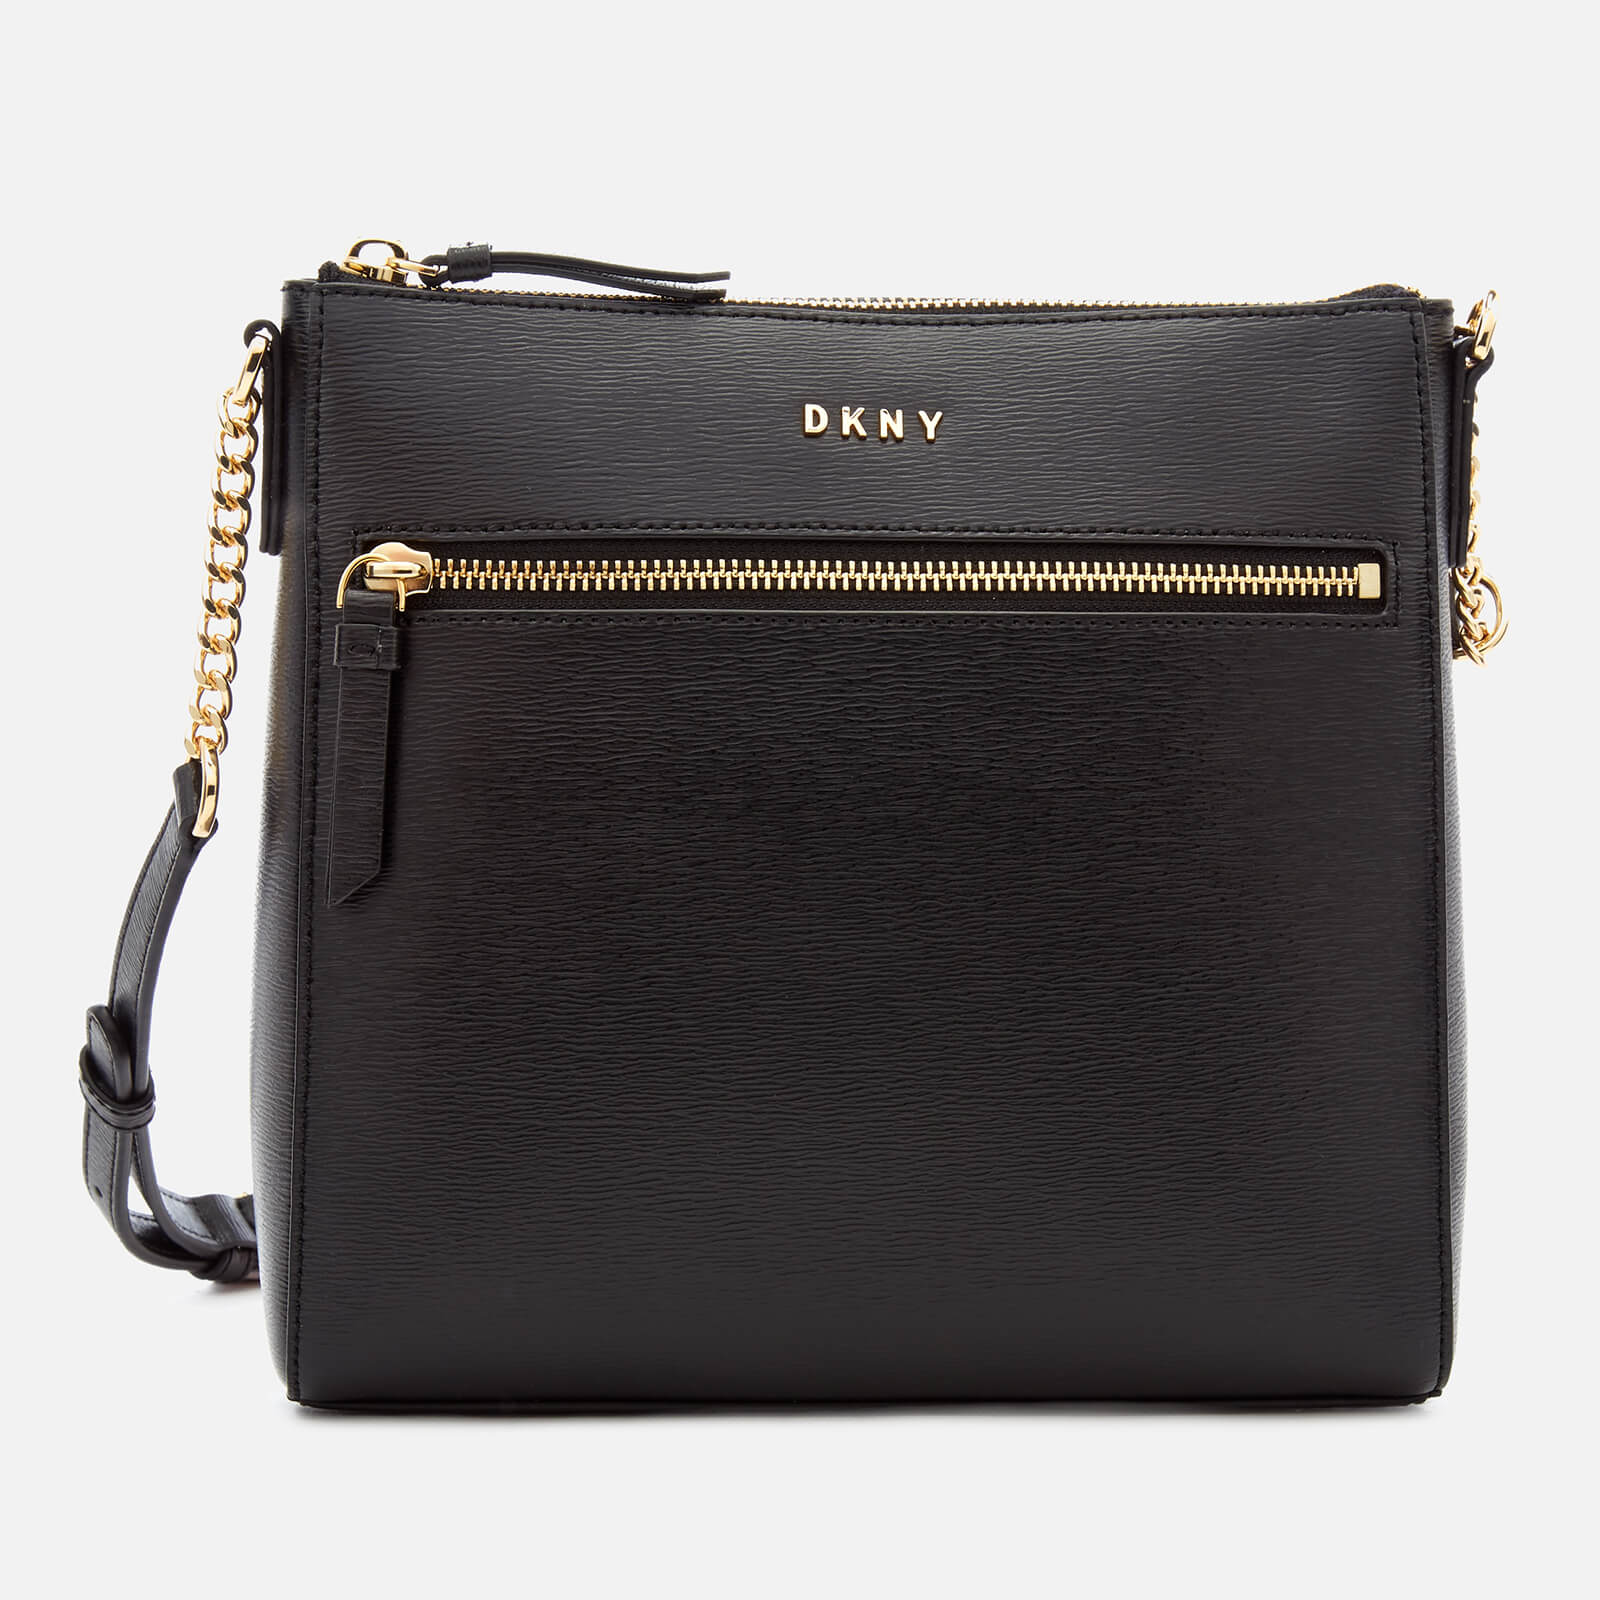 bebe7c0ba7 DKNY Women s Bryant Top Zip Cross Body Bag - Black - Free UK Delivery over  £50